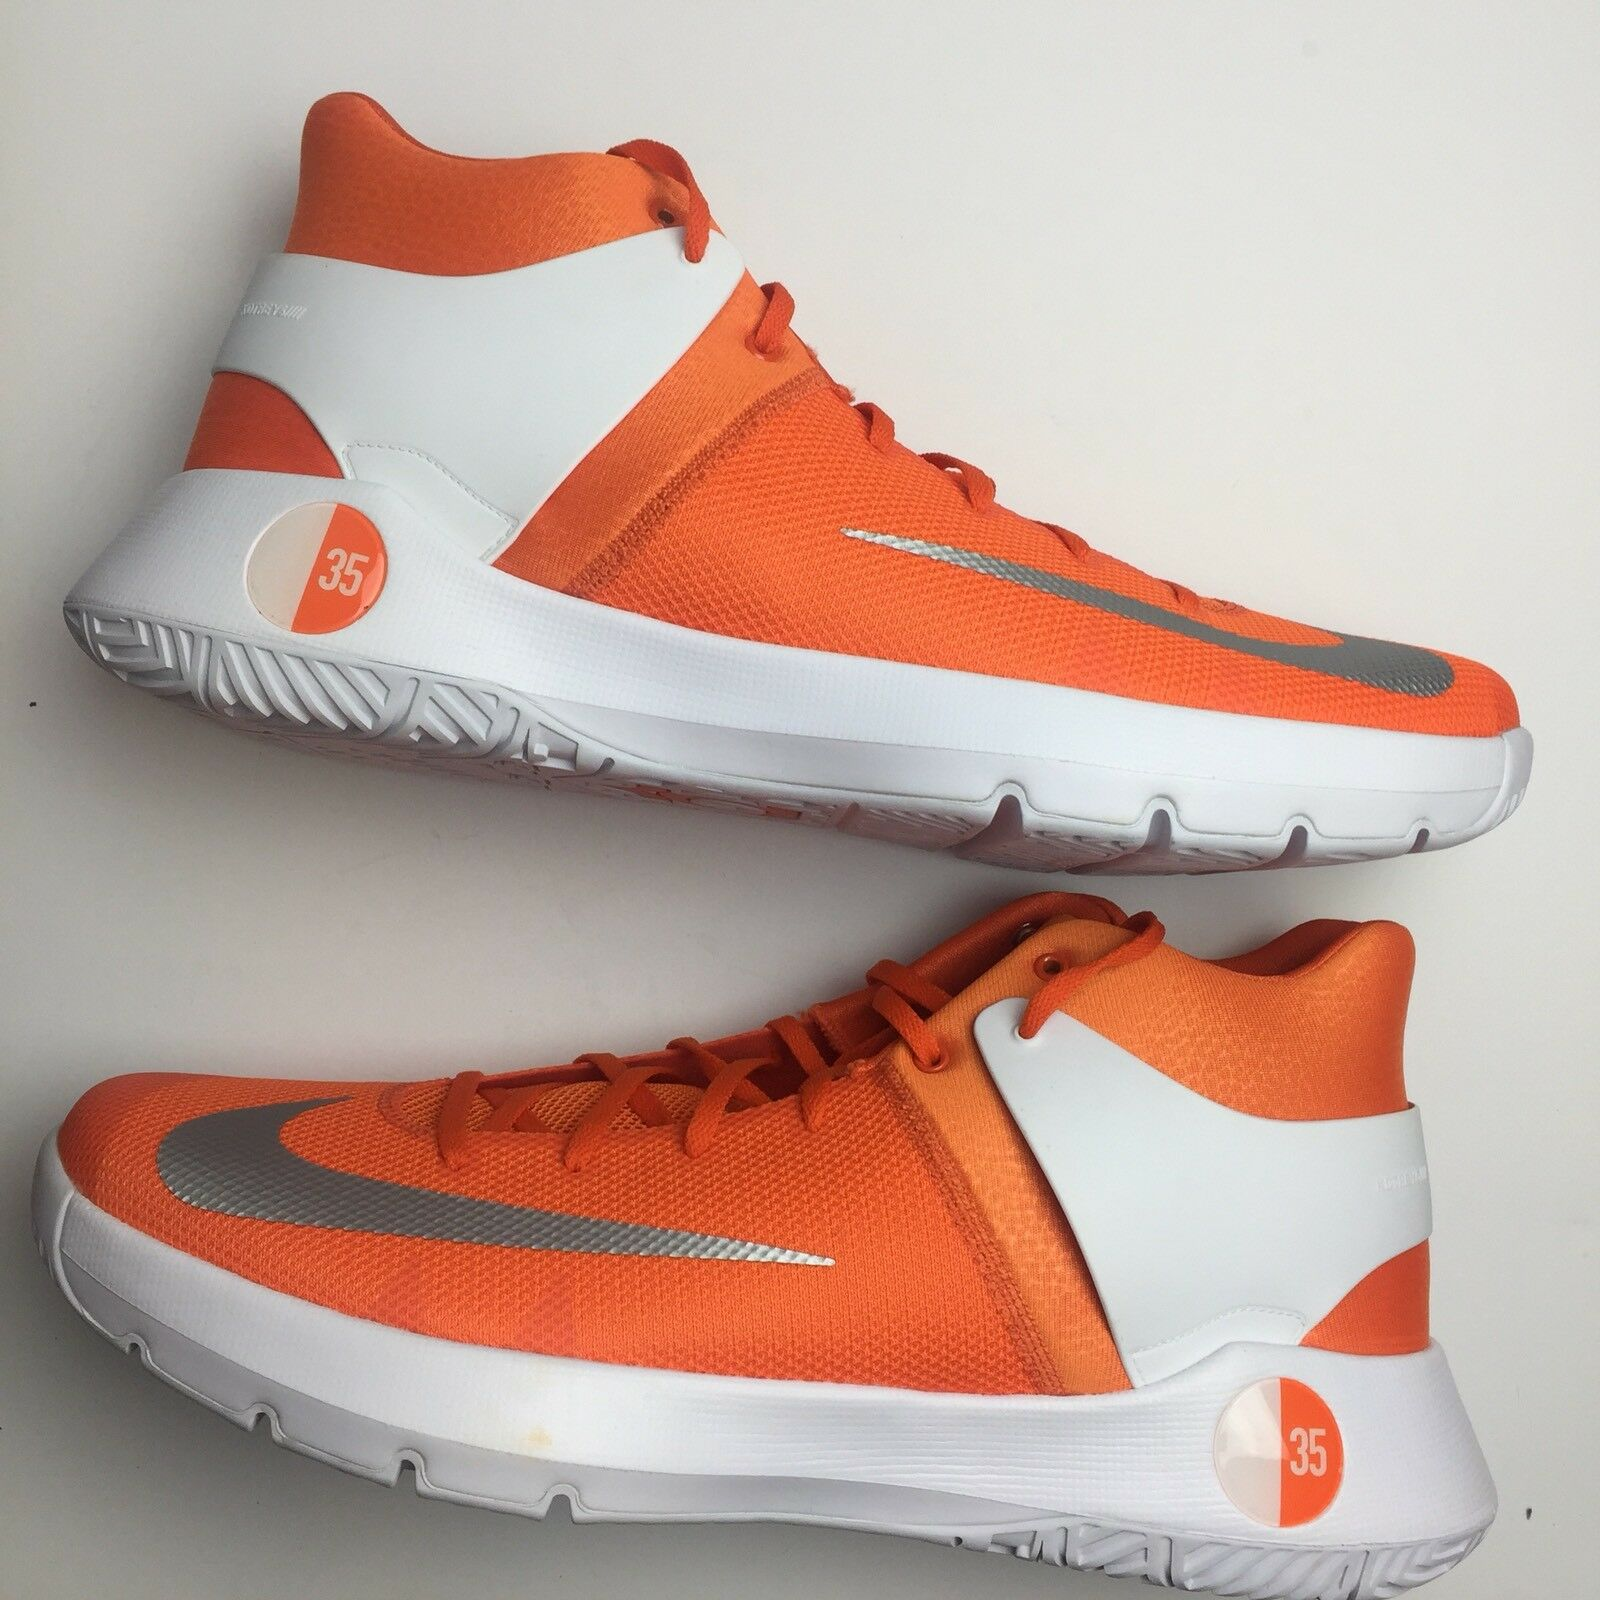 The latest discount shoes for men and women Nike Mens 17.5 KD Trey 5 Basketball Shoe Kevin Durant Orange White Sneaker New